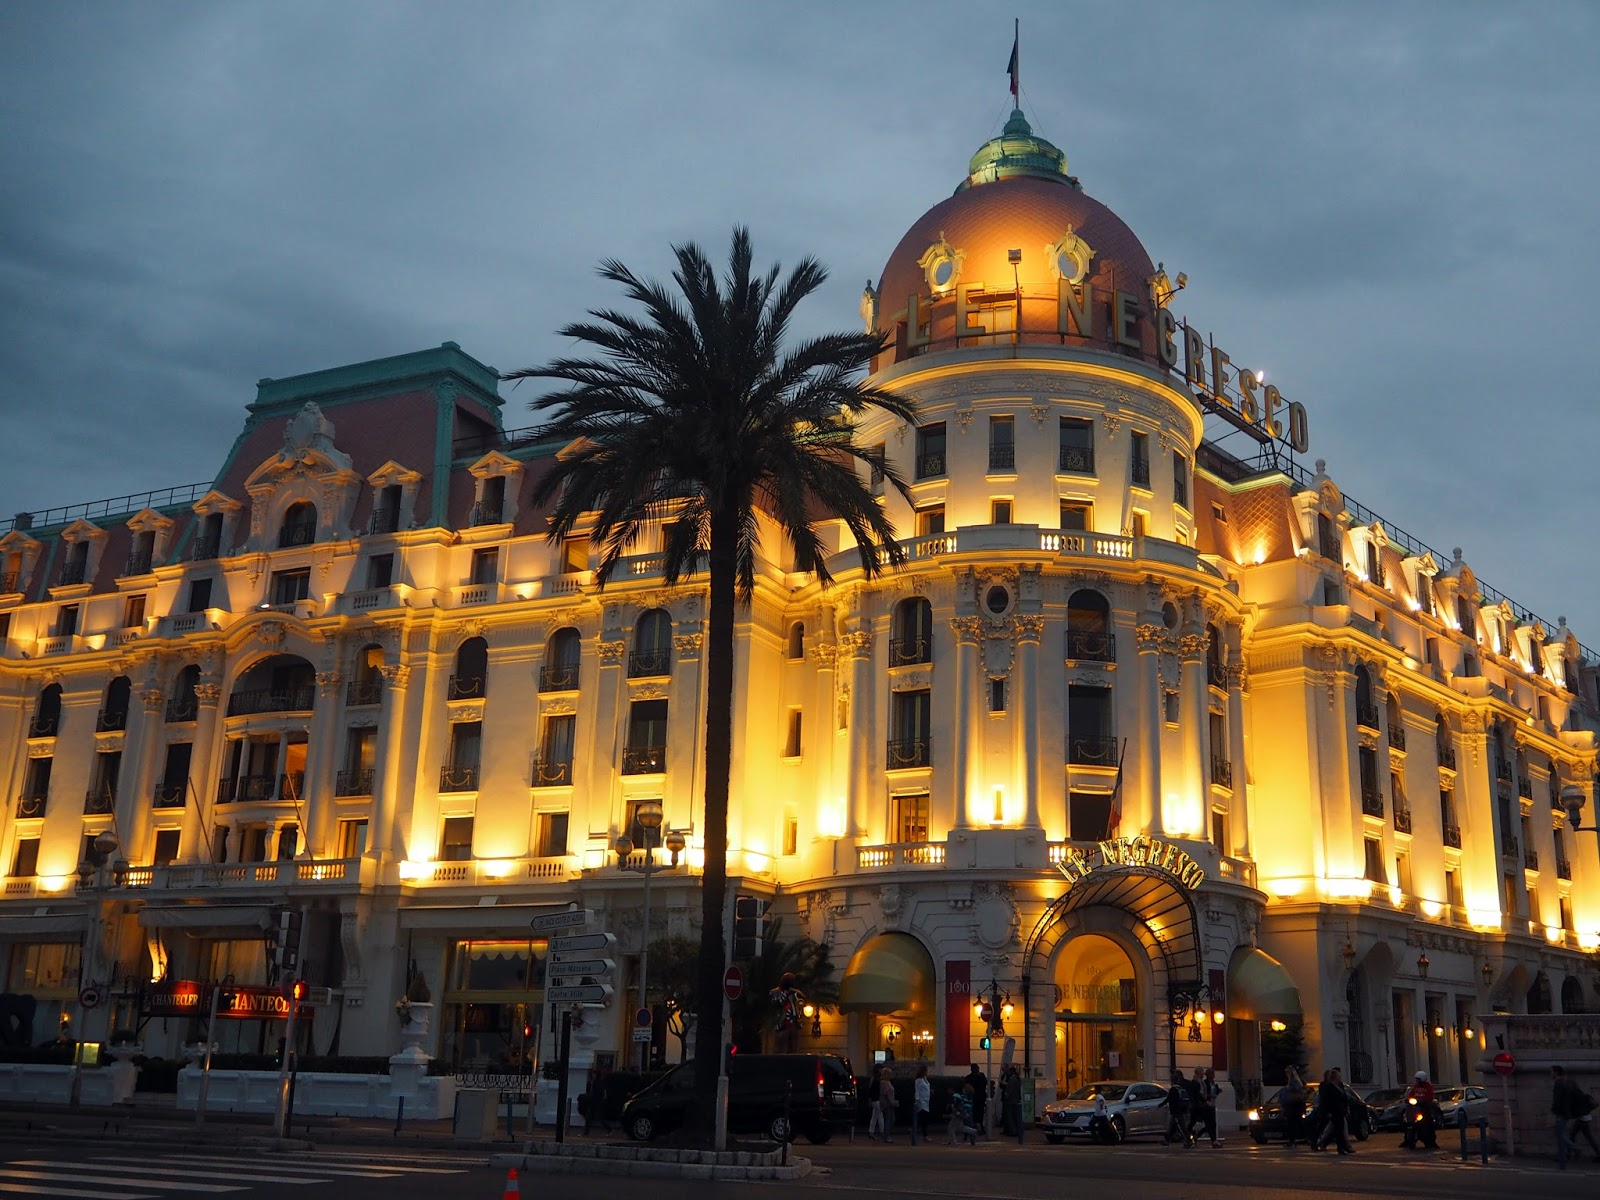 Sunset at Promenade Des Anglais, Le Negresco - Rachel Nicole UK Blogger